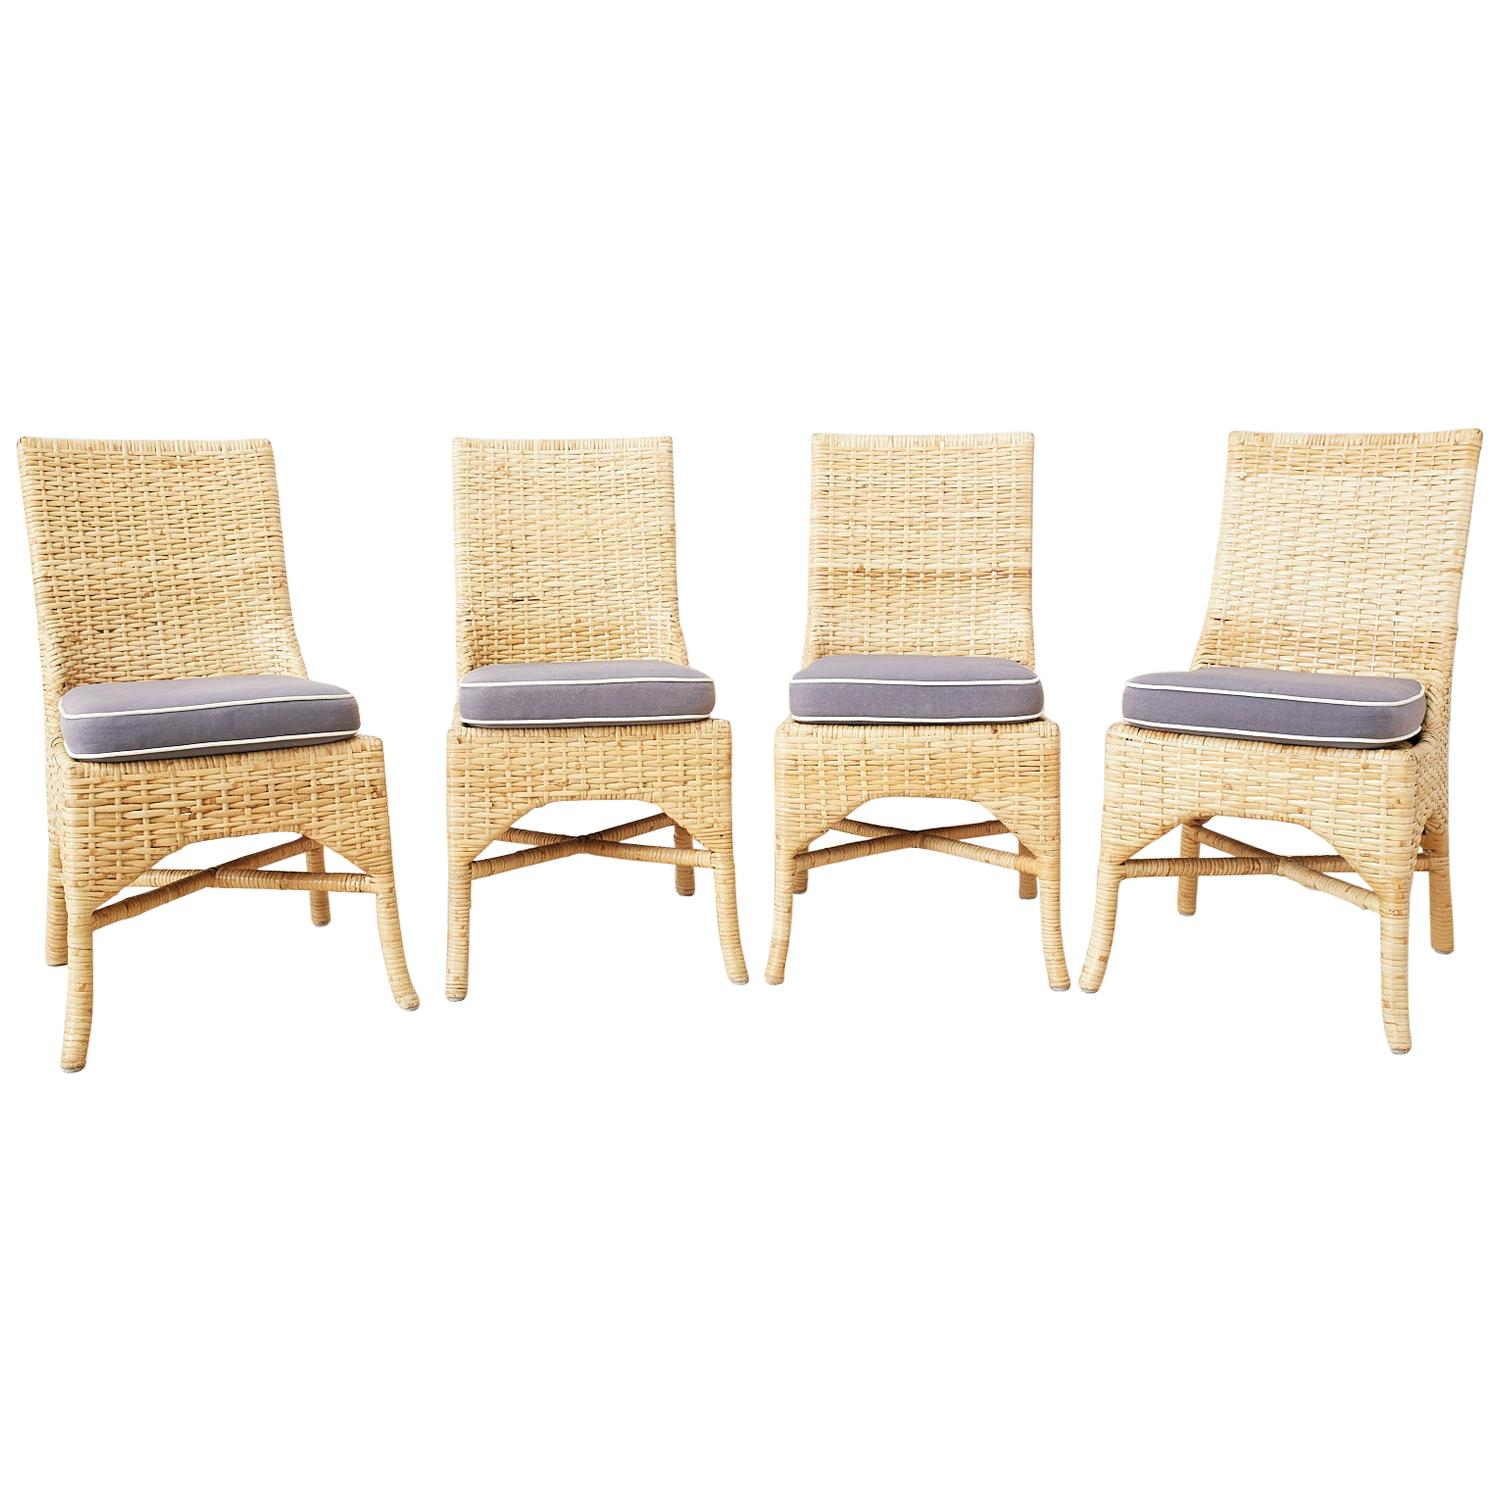 Set of Four McGuire Woven Rattan Wicker Dining Chairs